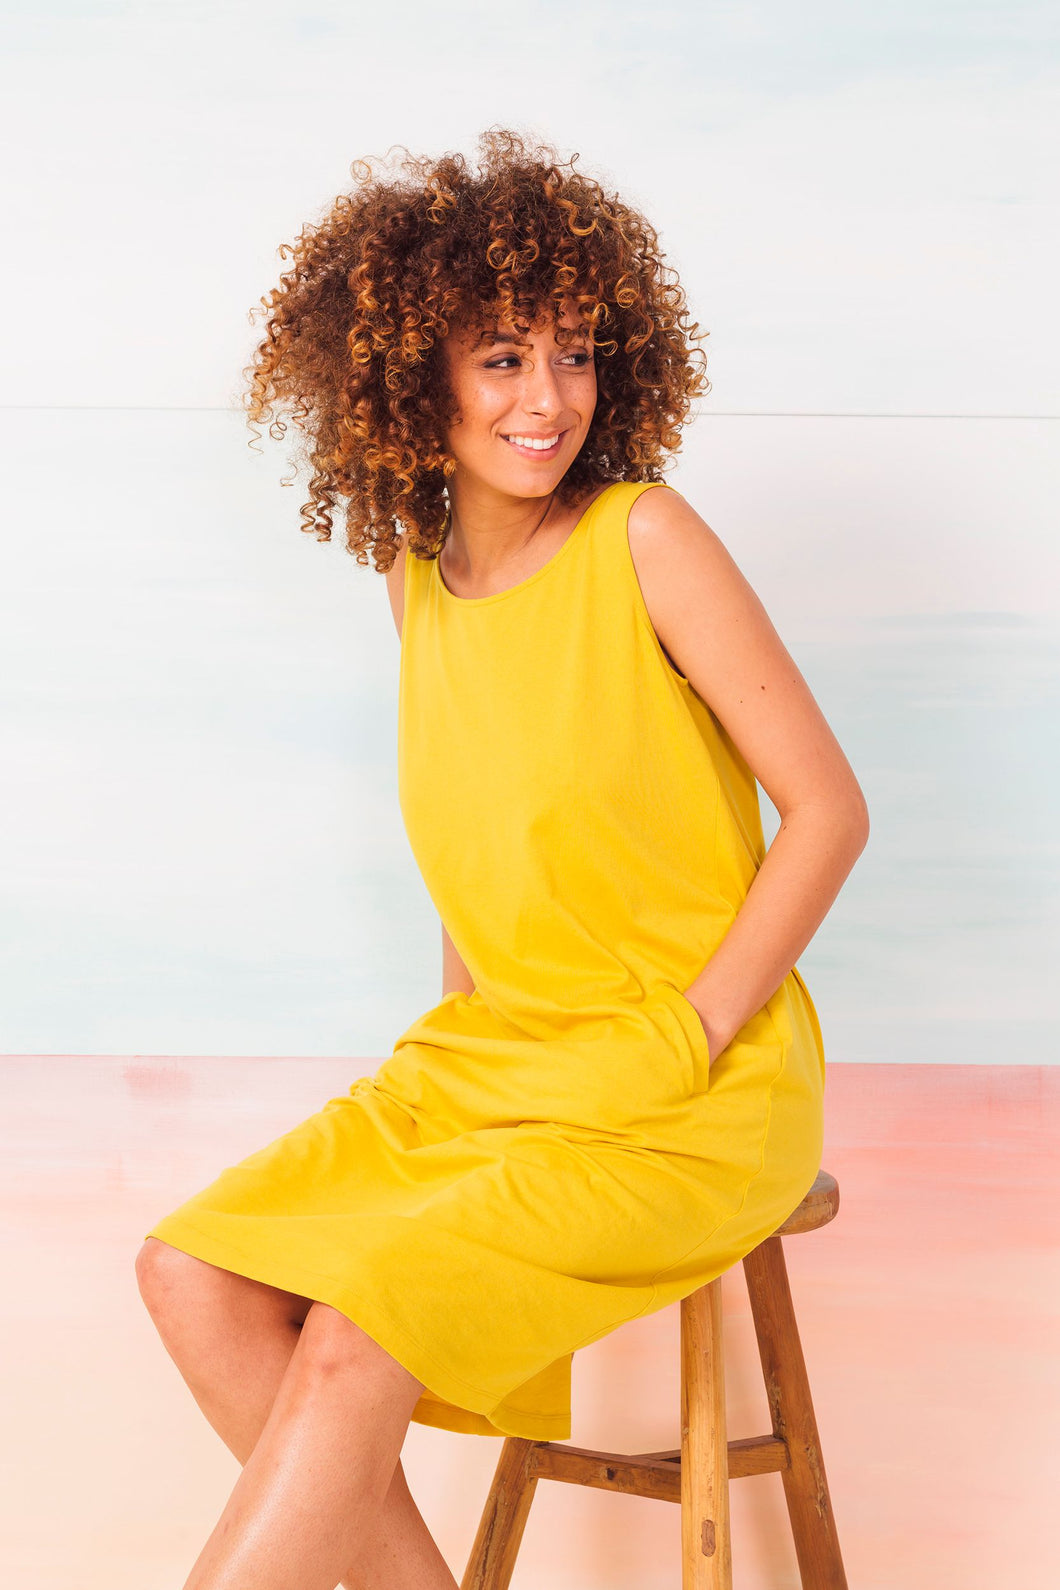 SKFK Aizane textured jersey tie back dress in Yellow - CW CW